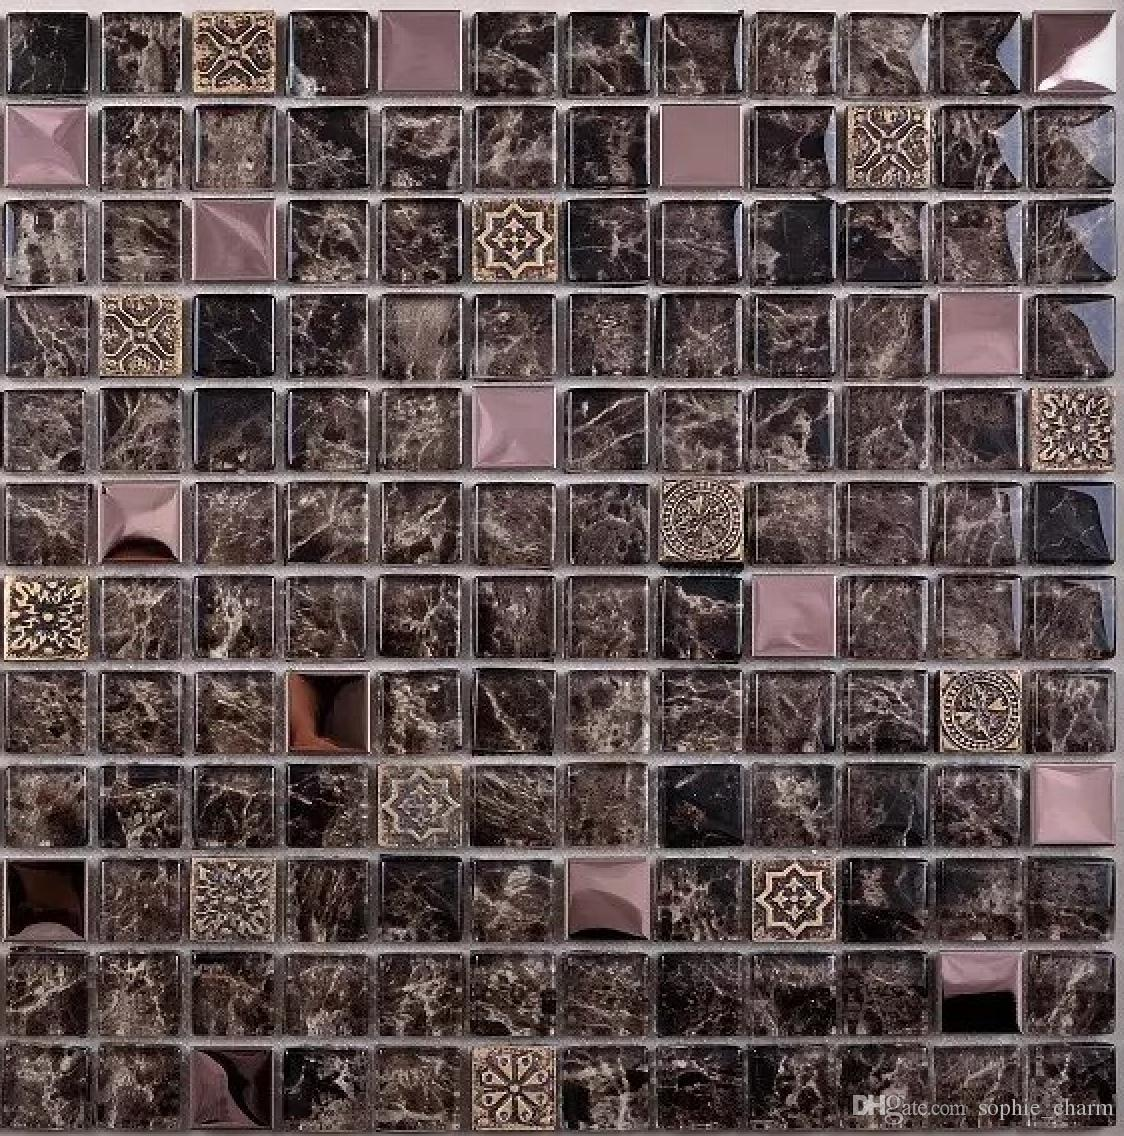 2020 Brown Glass Mosaic Tile Backsplash Ssmt410 Rose Gold Stainless Steel Metal Mosaic Kitchen Wall Tiles From Sophie Charm 14 87 Dhgate Com